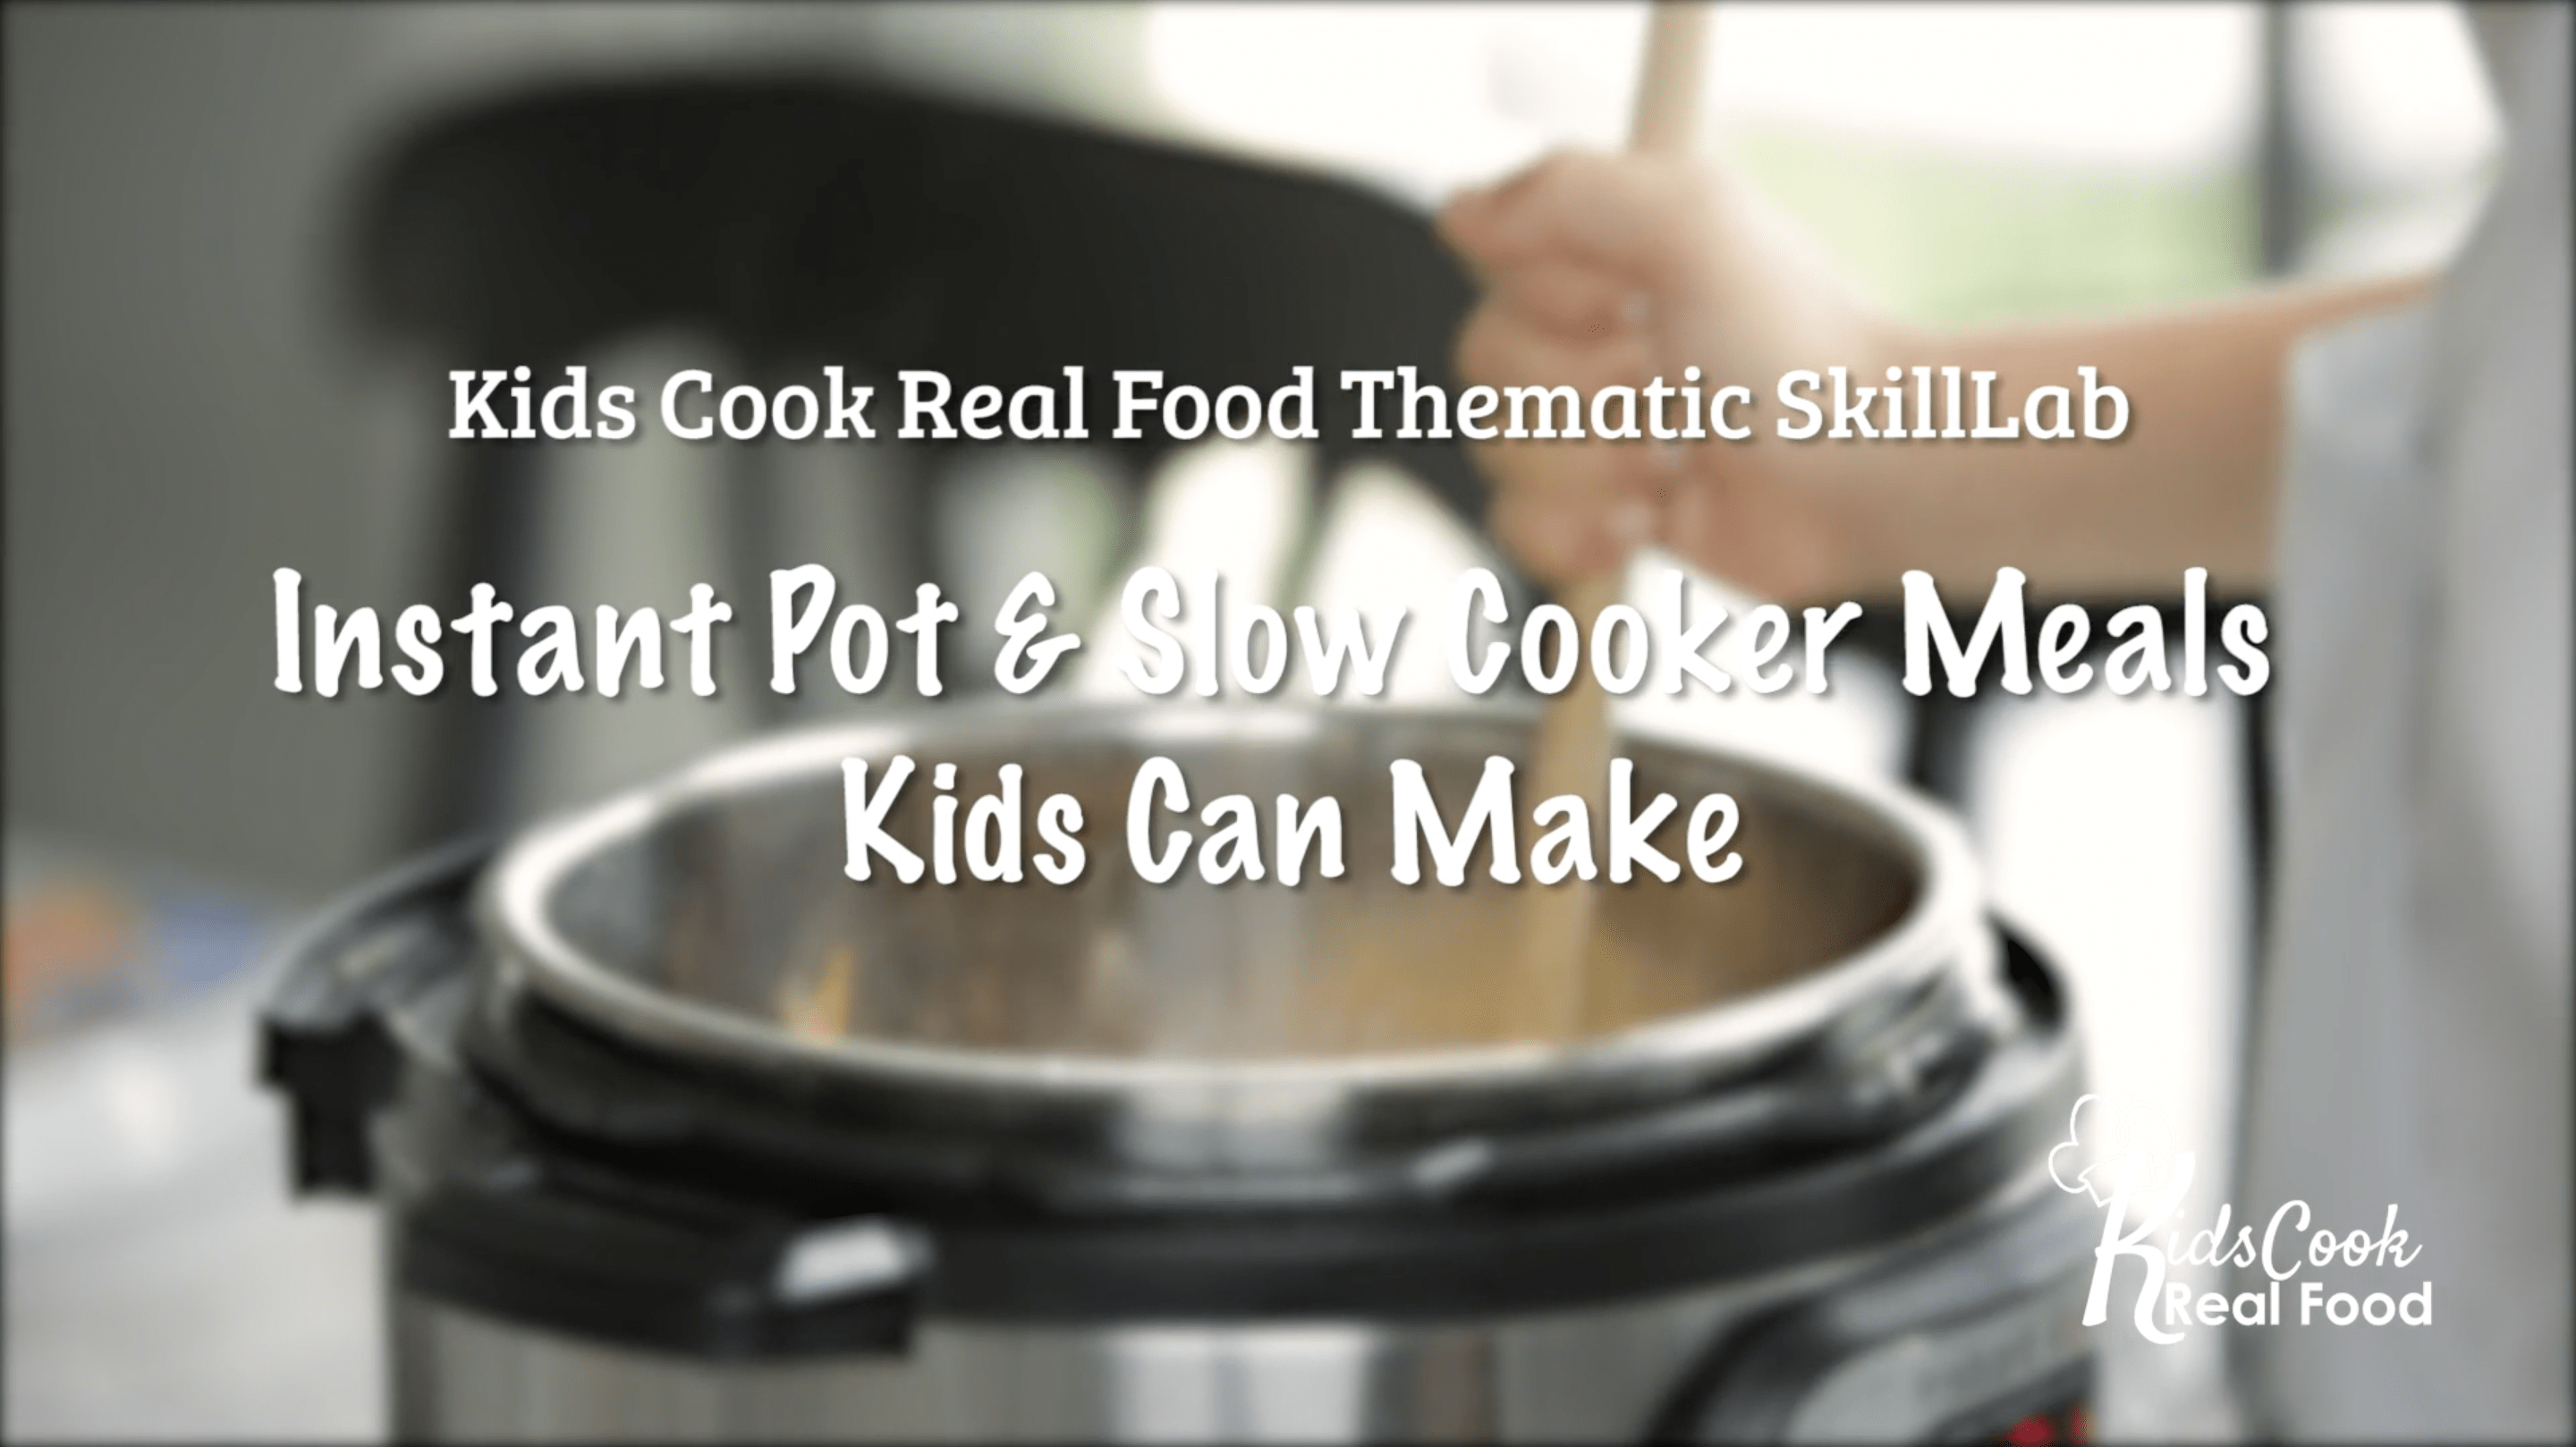 Instant Pot & Slow Cooker Meals Kids Can Make: Thematic SkillLab from Kids Cook Real Food